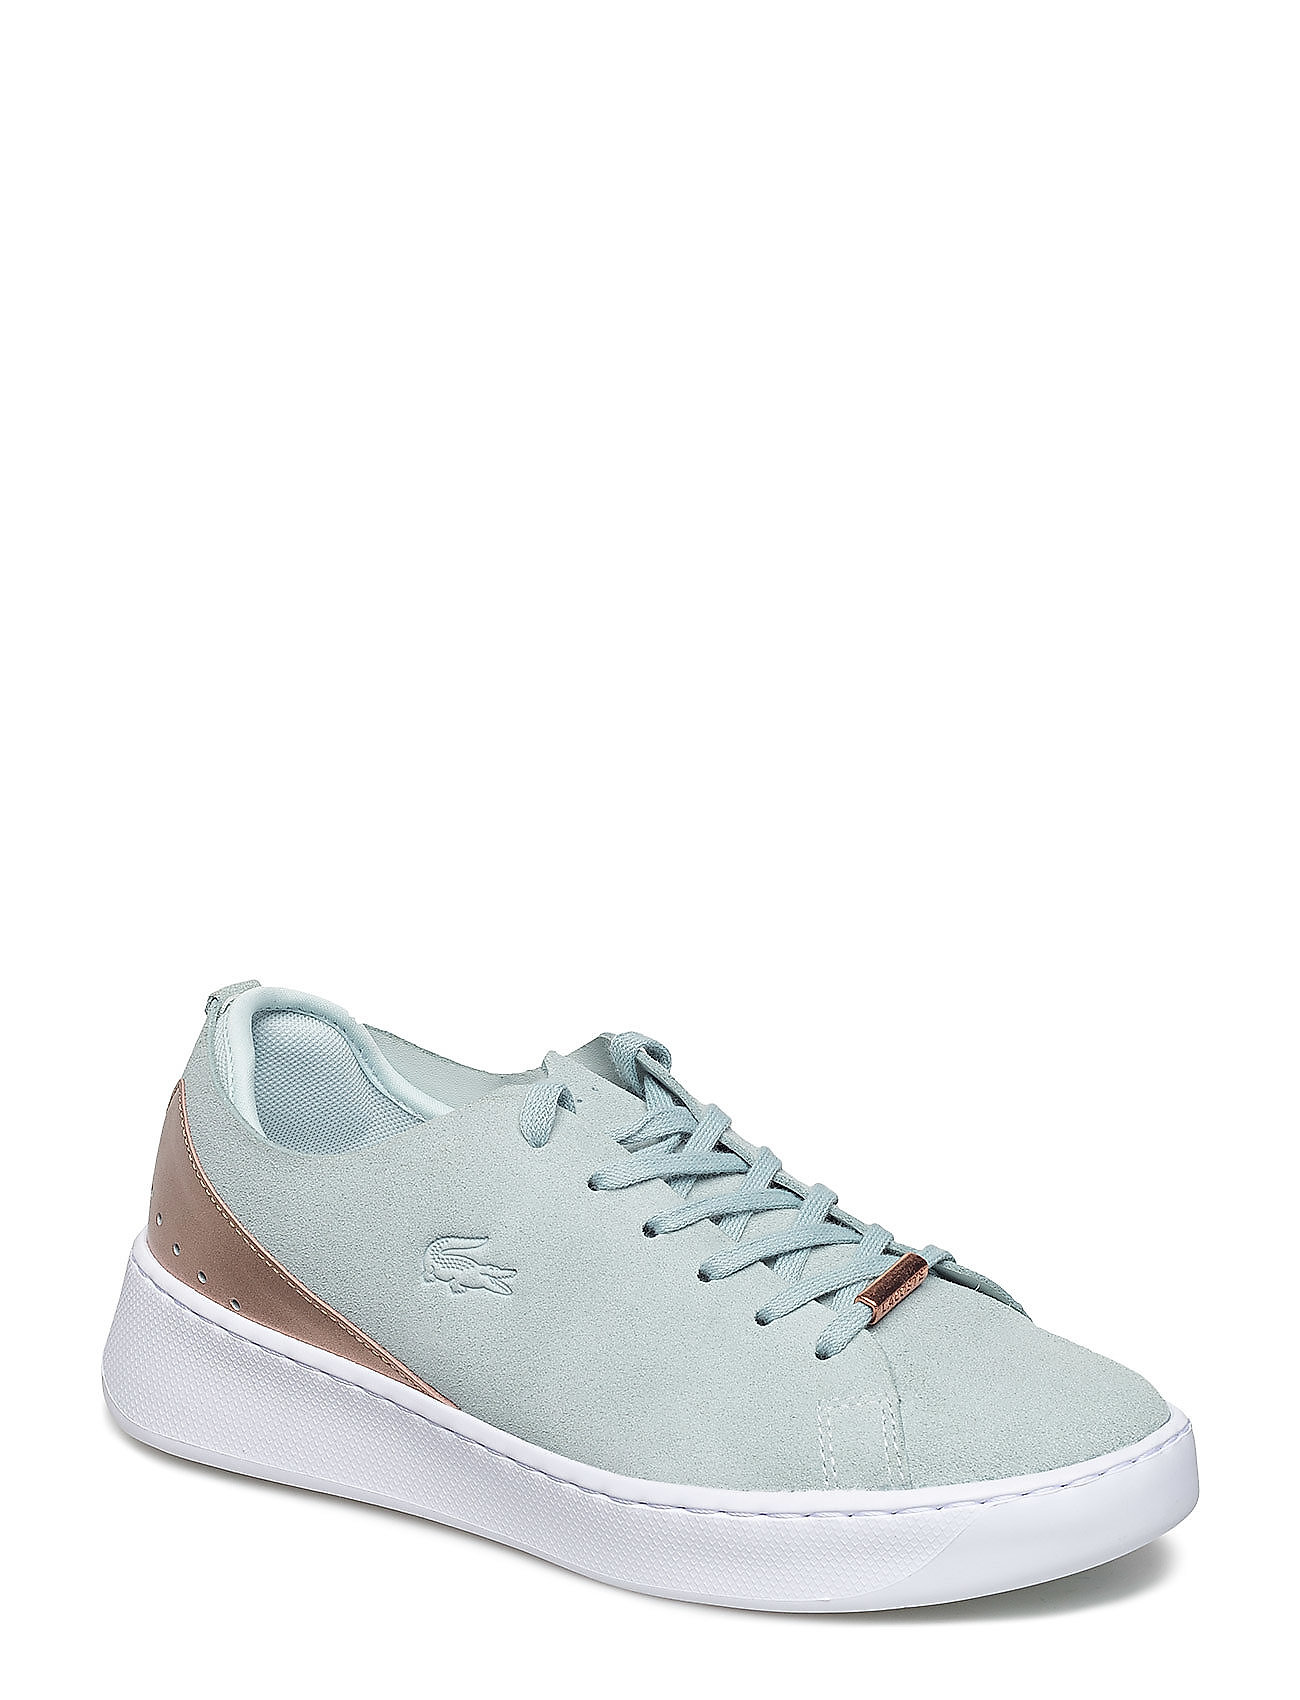 Image of Eyyla 218 2 Qsp Low-top Sneakers Blå Lacoste Shoes (3067527419)